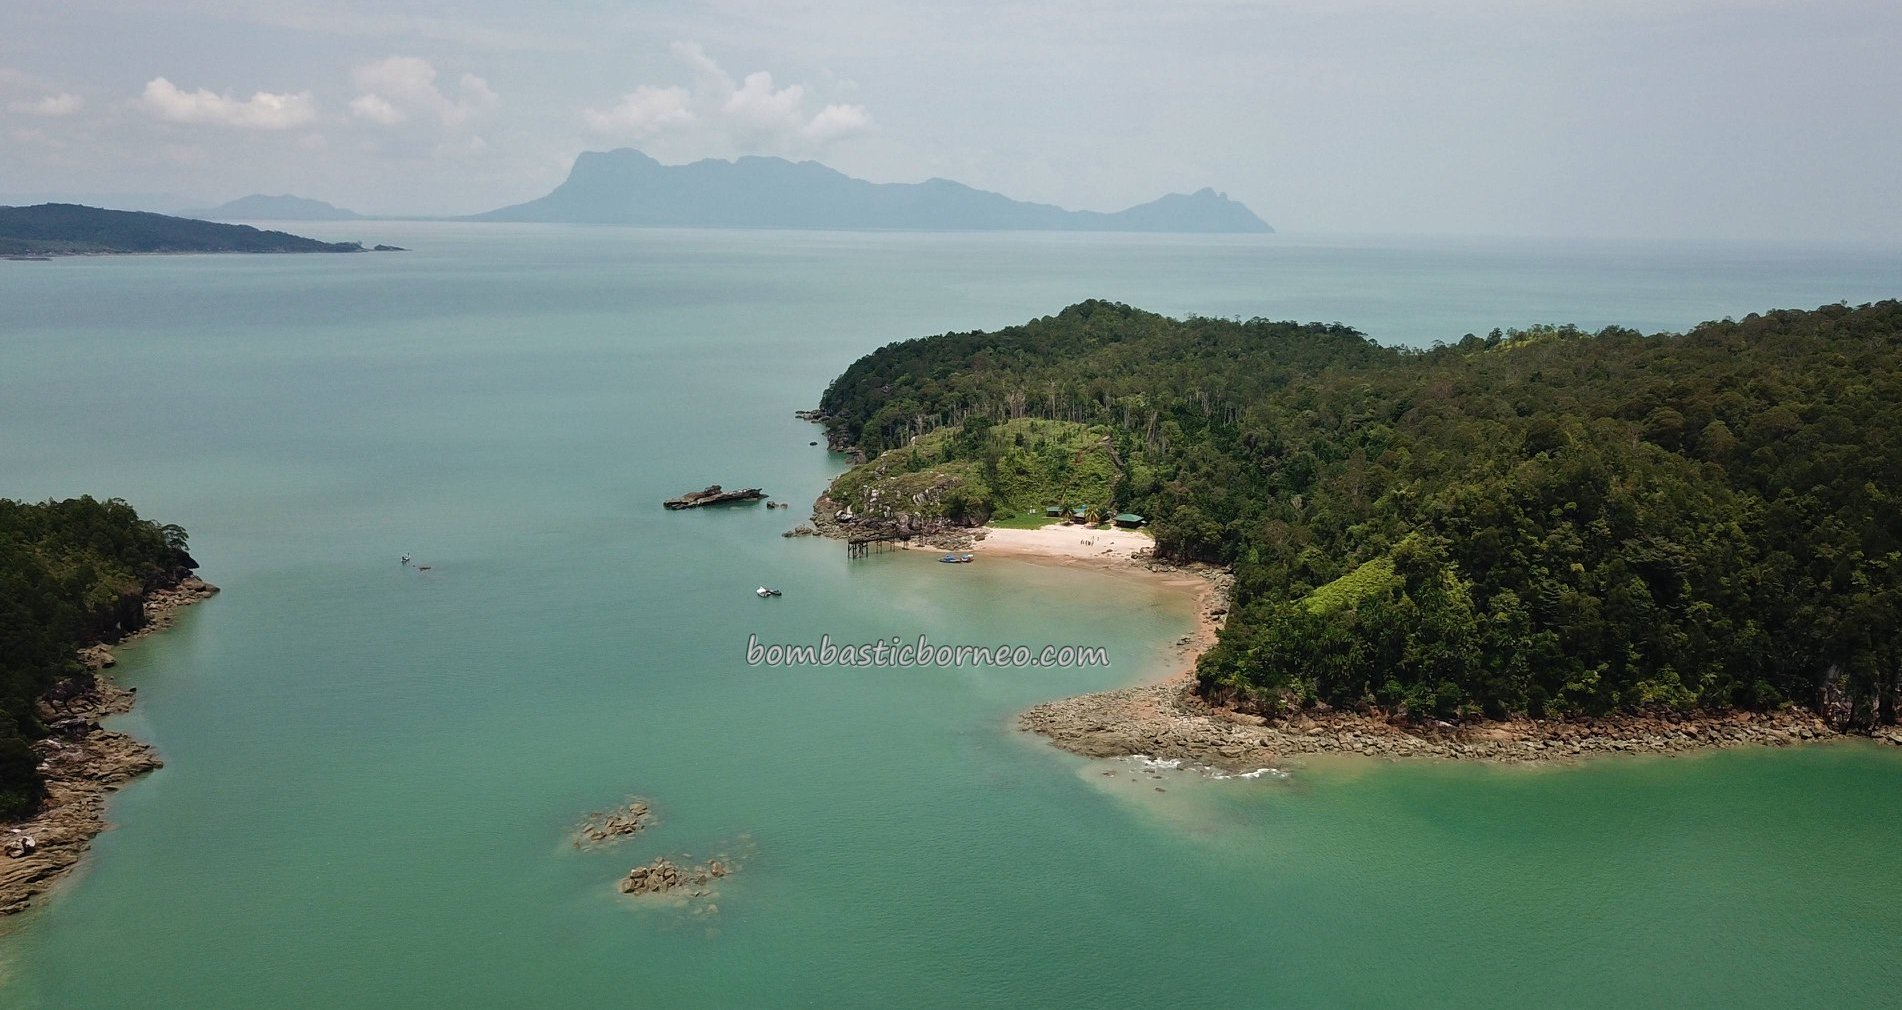 beach, Pulau, Taman Negara, adventure, nature, jungle trekking, destination, hidden paradise, Malaysia, Tourism, tourist attraction, travel guide, transborder, 古晋峇哥国家公园, 马来西亚旅游景点,